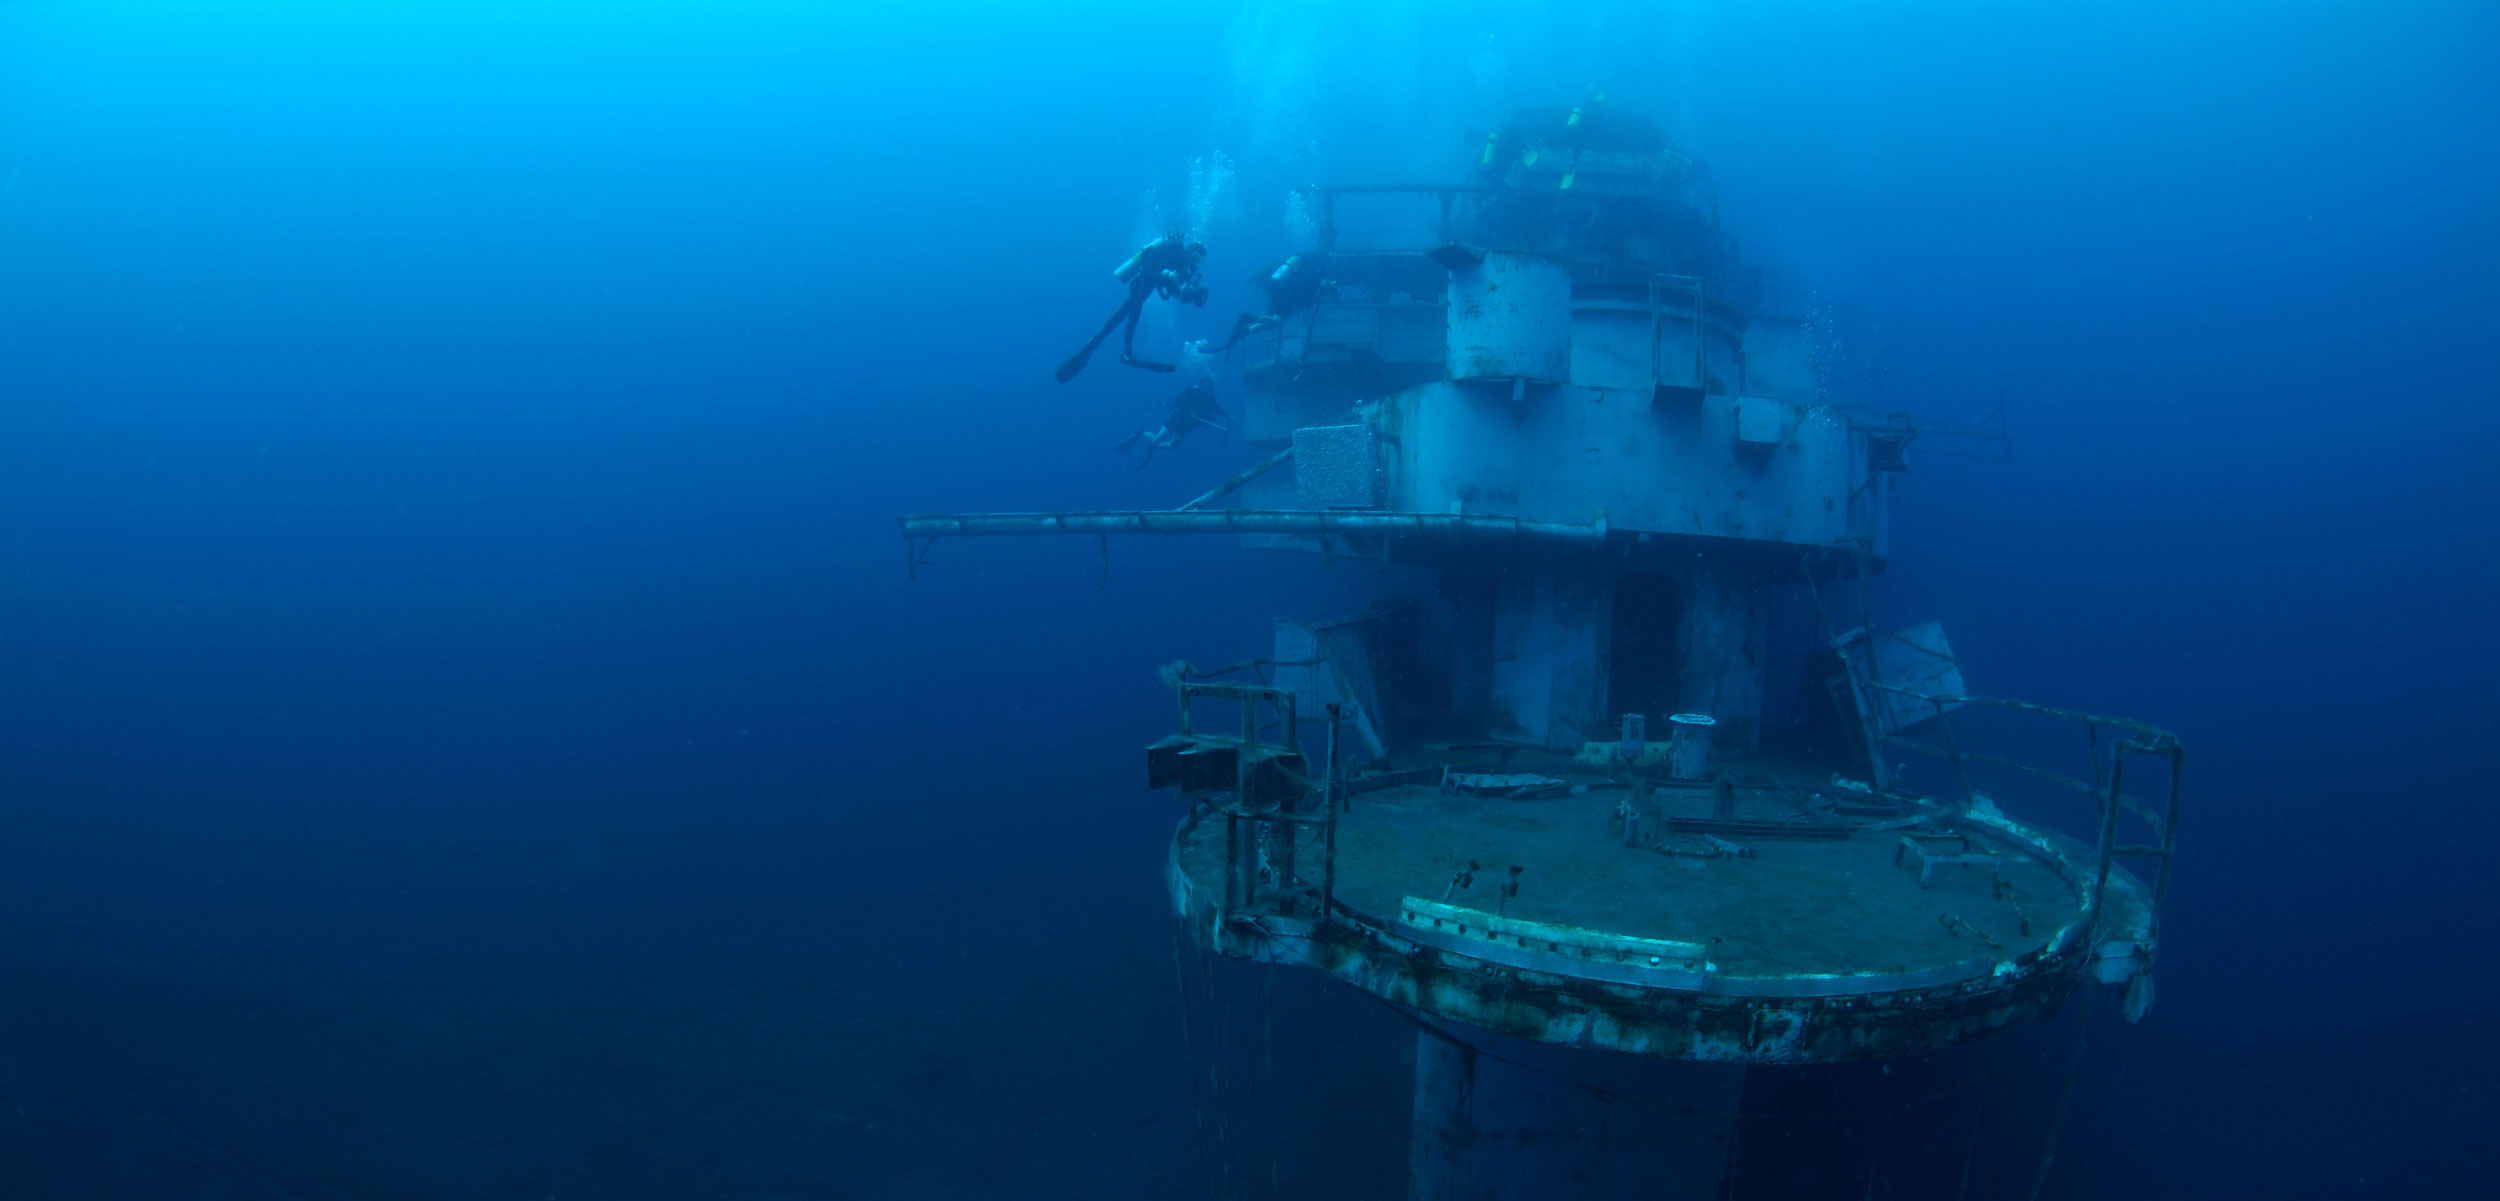 Oriskany wreck sunk off Pensacola, Florida Gulf of Mexico